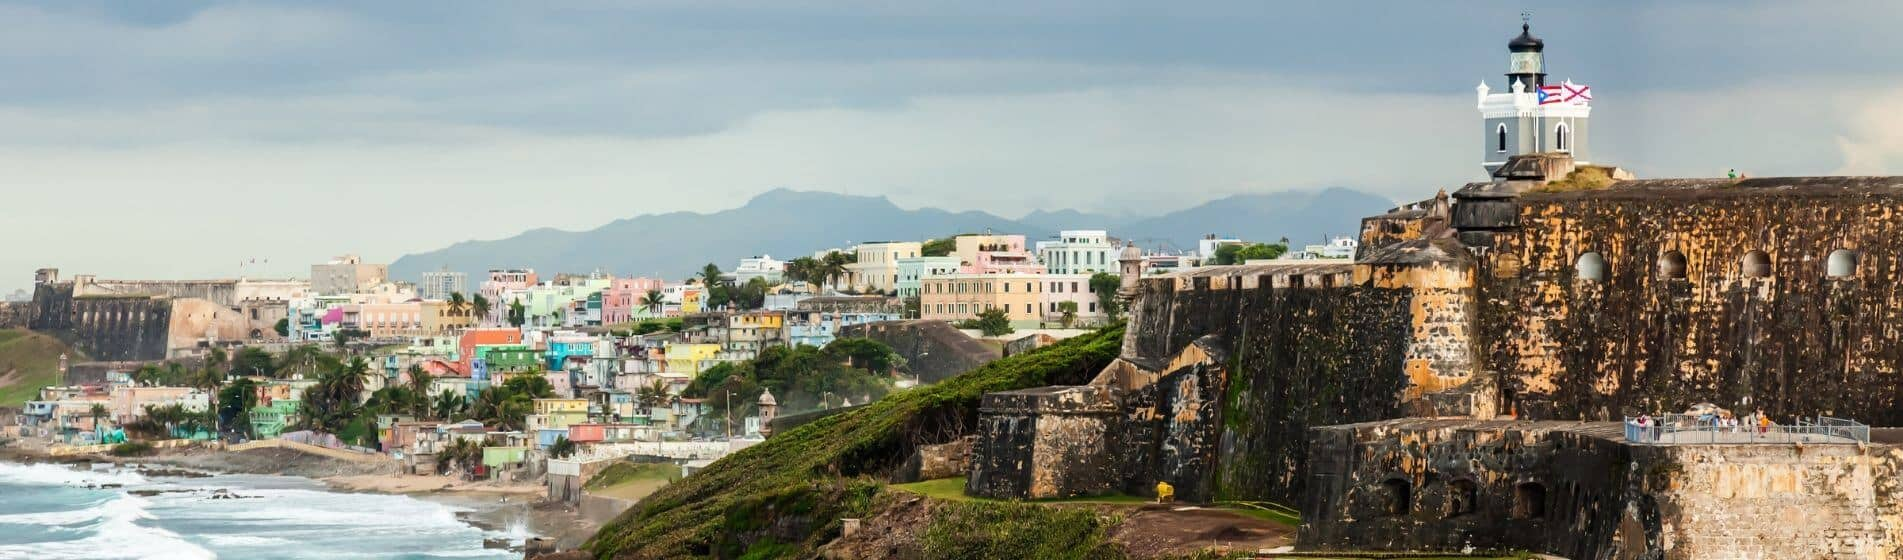 FAQs About Moving to, Living in, and Taxes in Puerto Rico